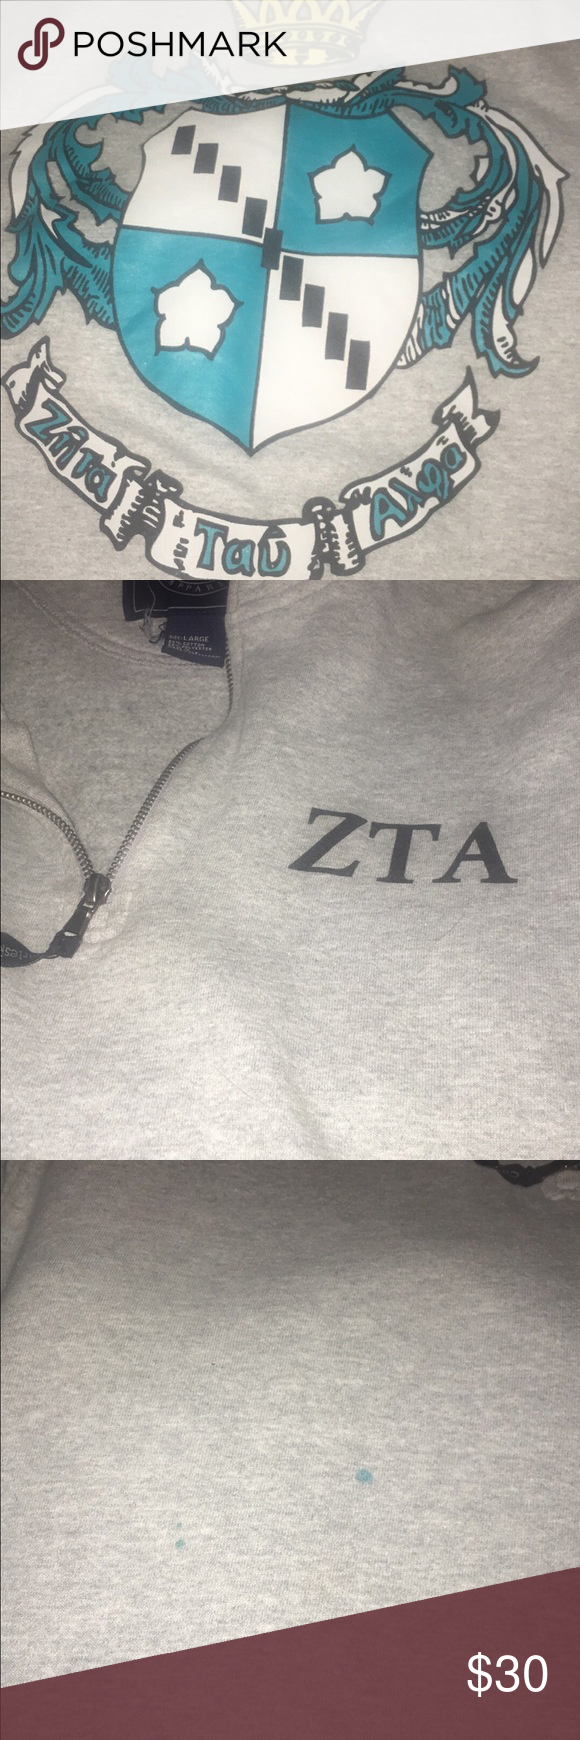 ZTA Crest Quarter Zip 2 small paint stains on the front, otherwise perfect Jackets & Coats